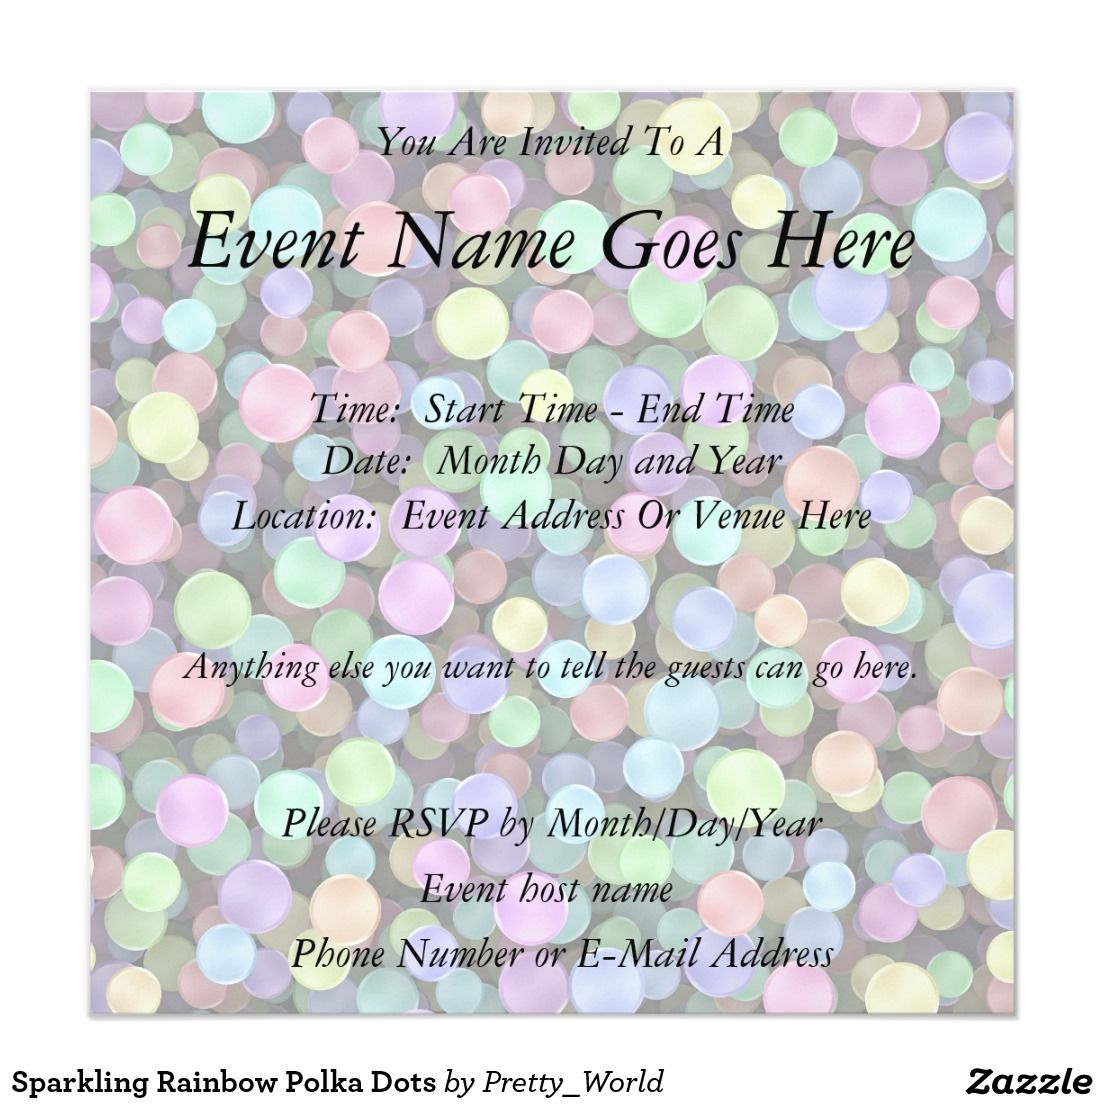 Sparkling Rainbow Polka Dots Card Wedding